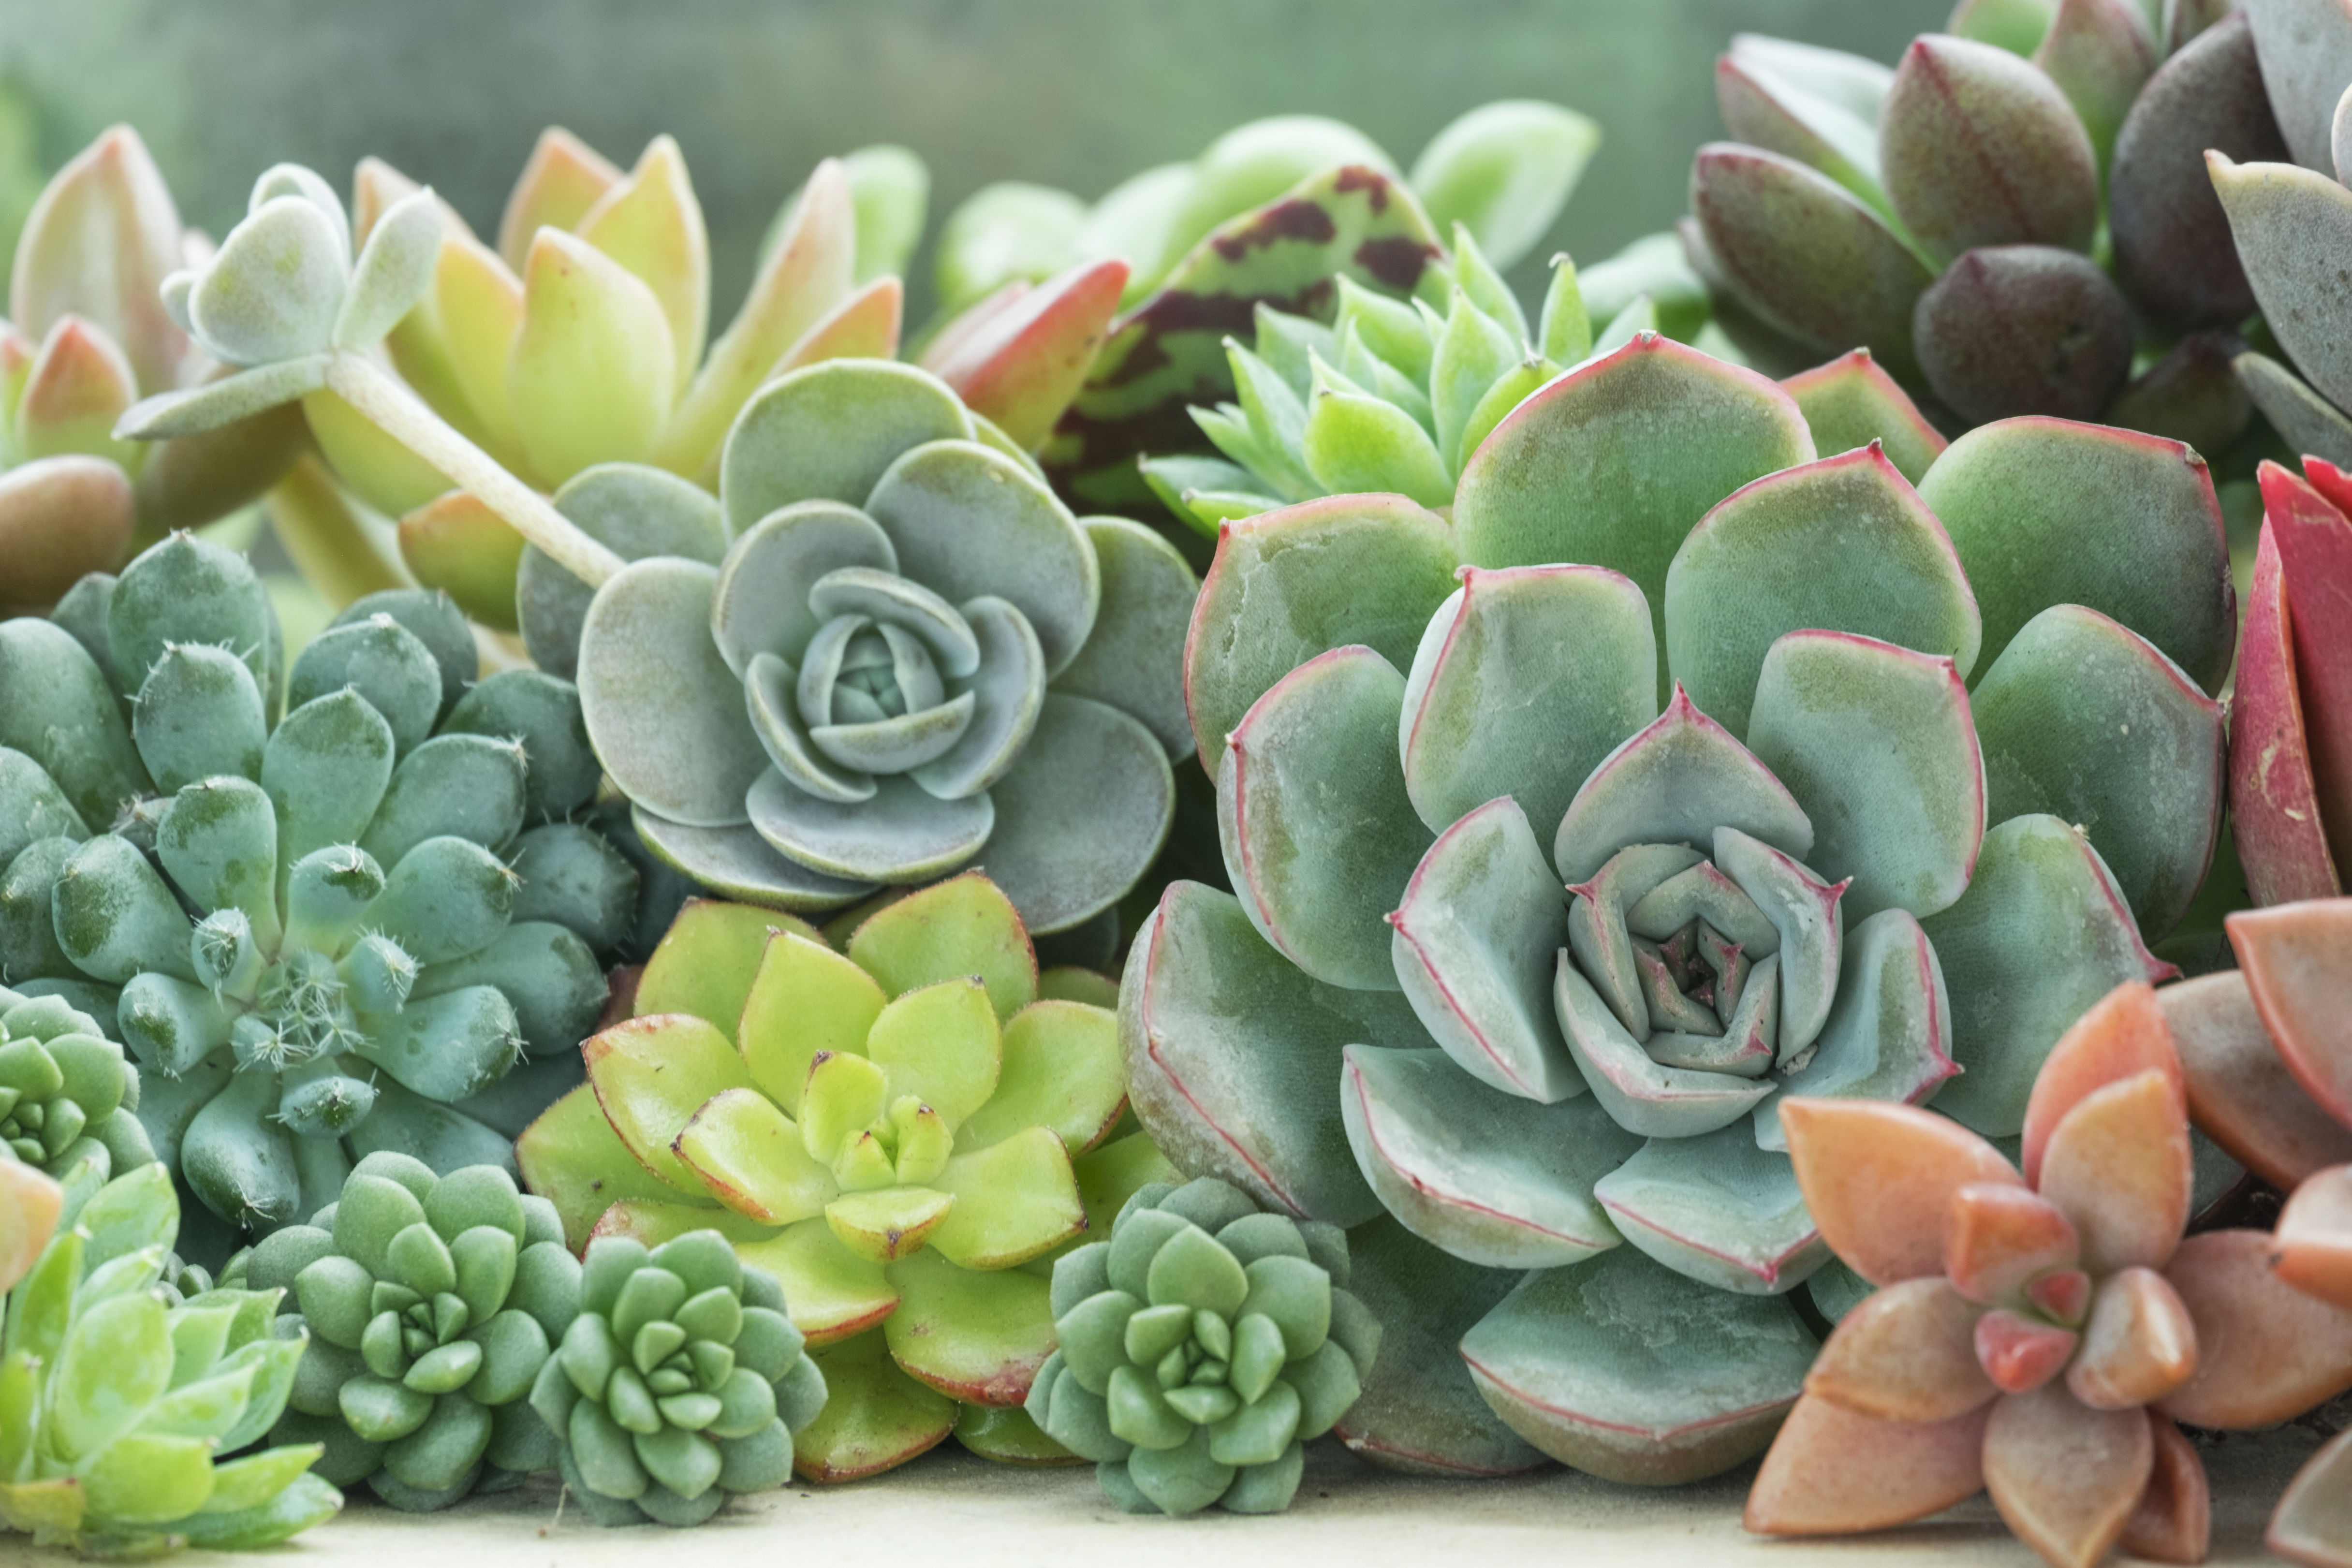 100 Different Types of Succulent Plants (and Species)